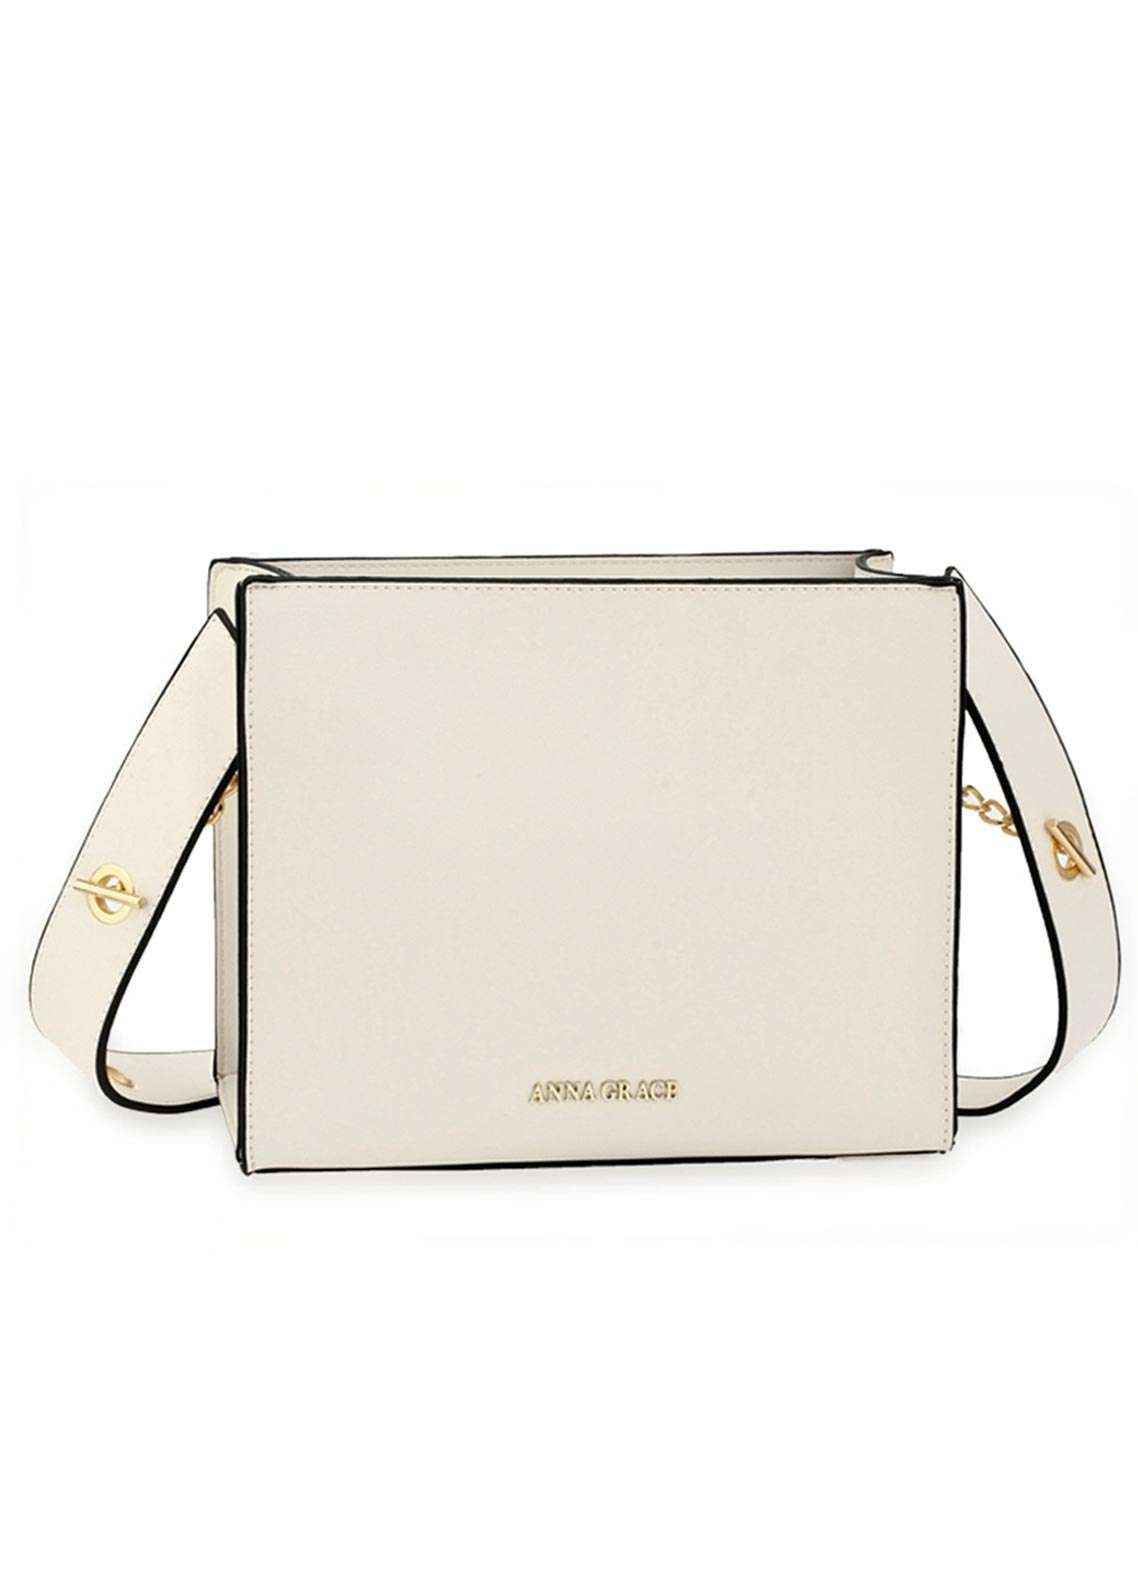 Anna Grace London Faux Leather Tote Bags  for Women  White with Smooth Texture